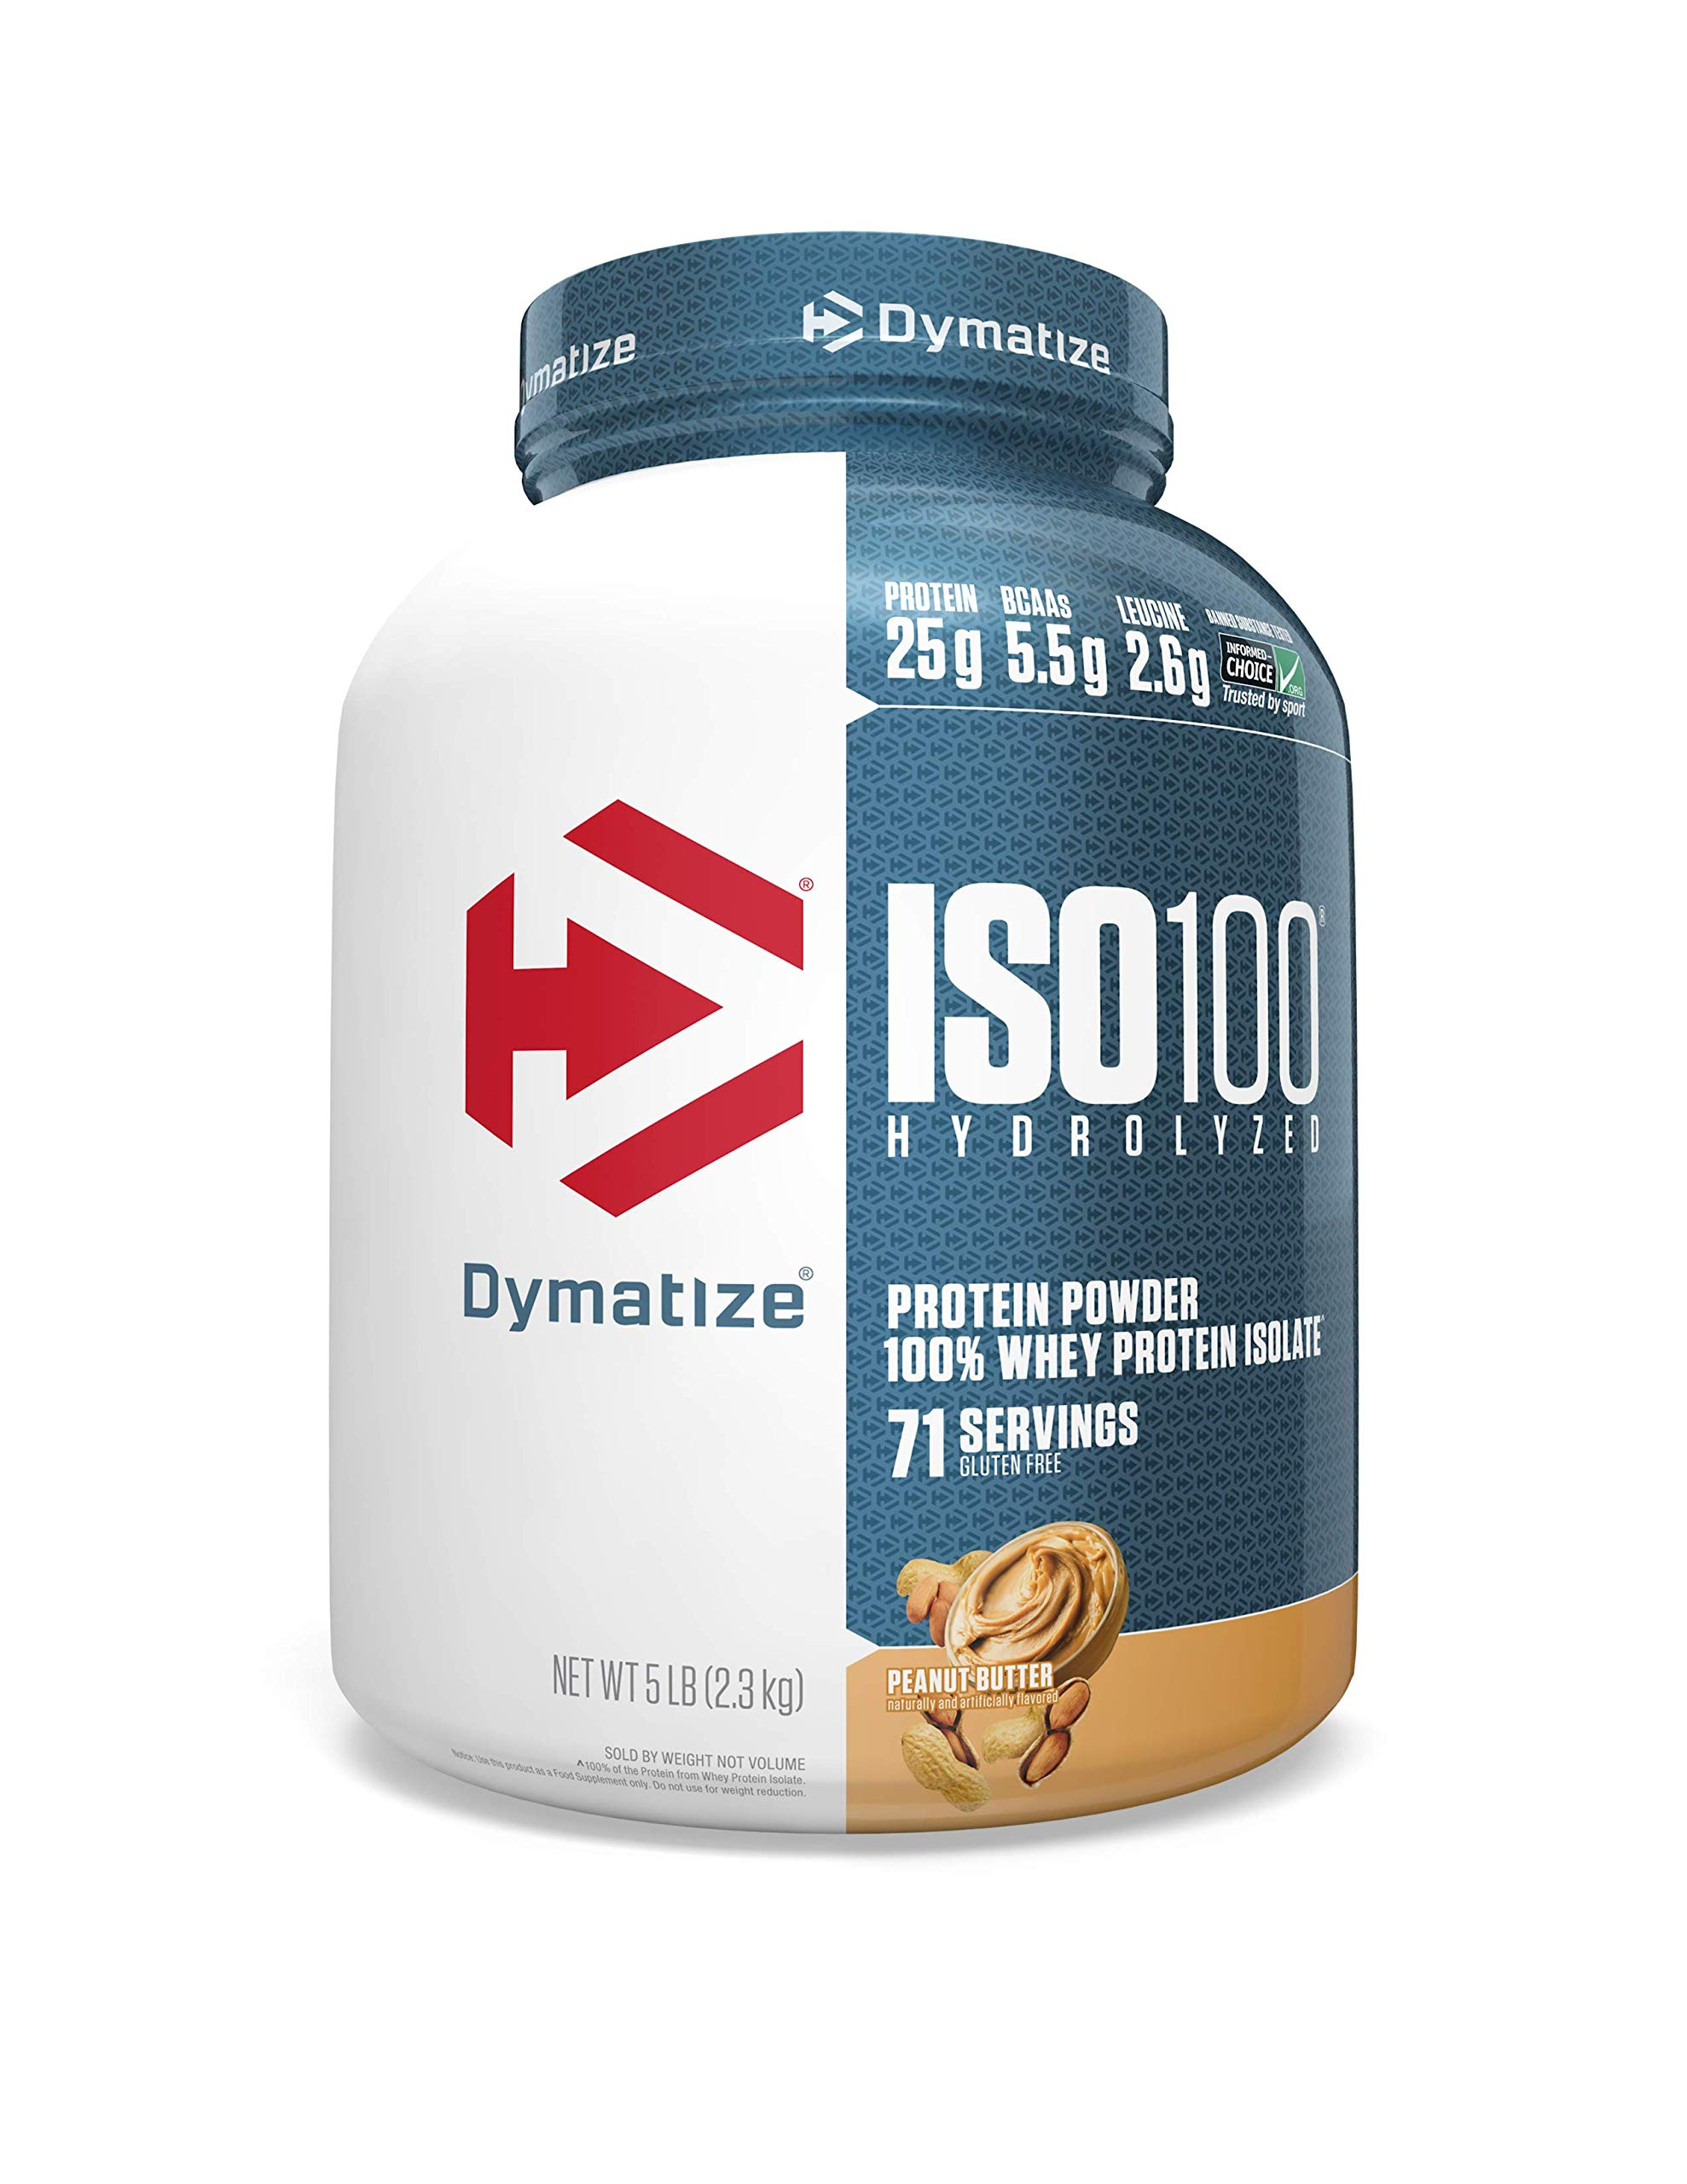 Dymatize ISO100 Hydrolyzed Protein Powder, 100% Whey Isolate Protein, 25g of Protein, 5.5g BCAAs, Gluten Free, Fast Absorbing, Easy Digesting, Peanut Butter, 5 Pound